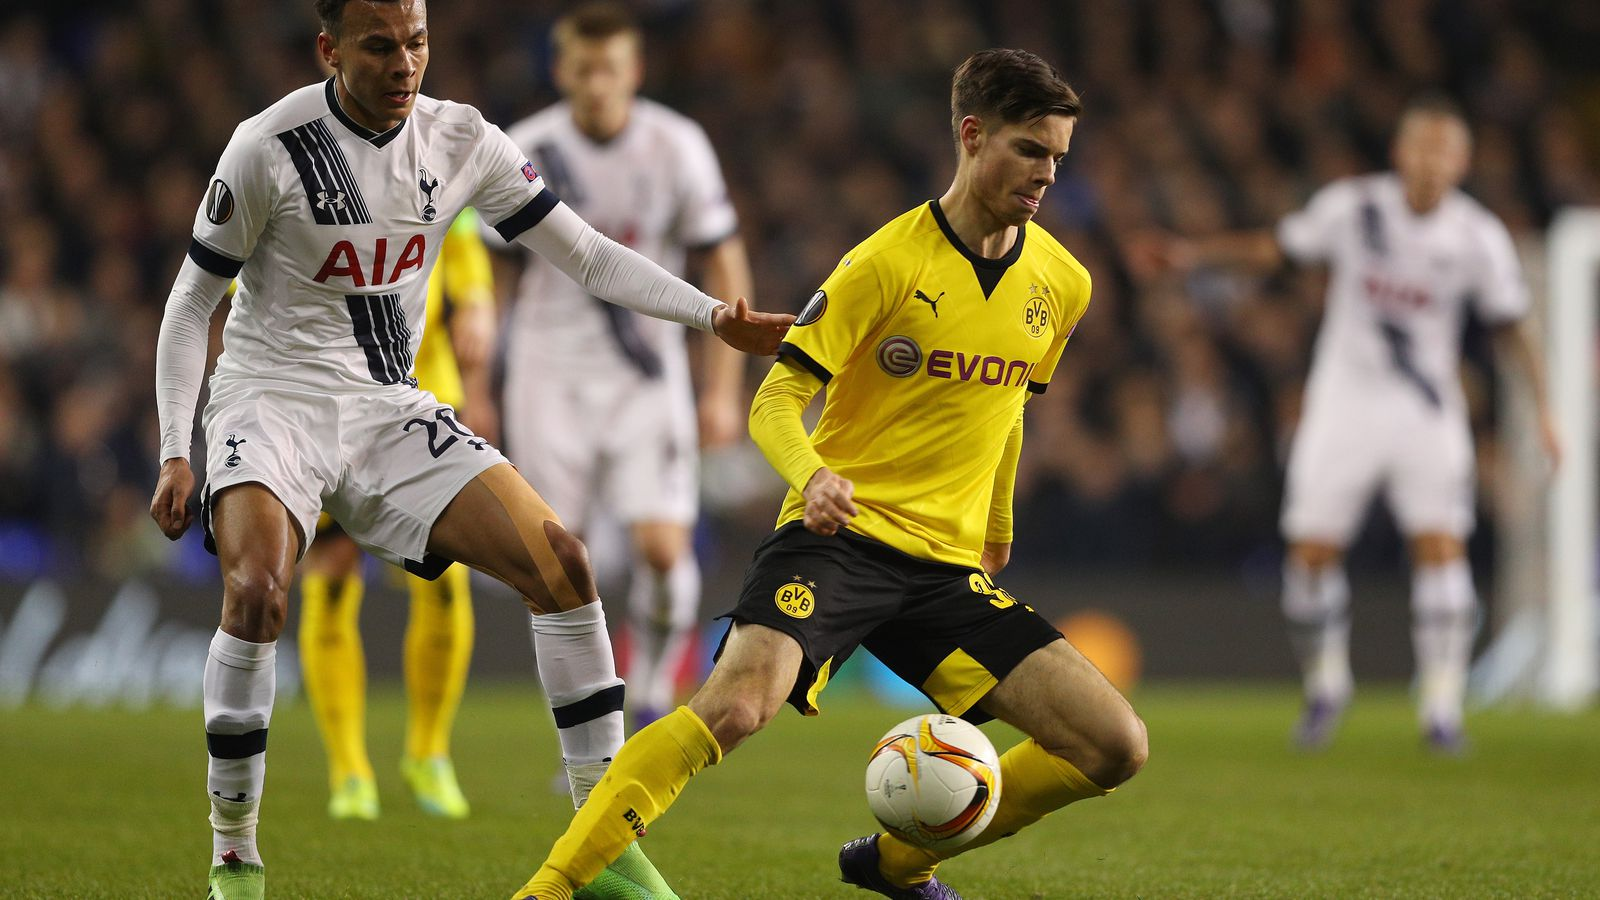 Julian Weigl is on track to be one of Europe s elite midfielders